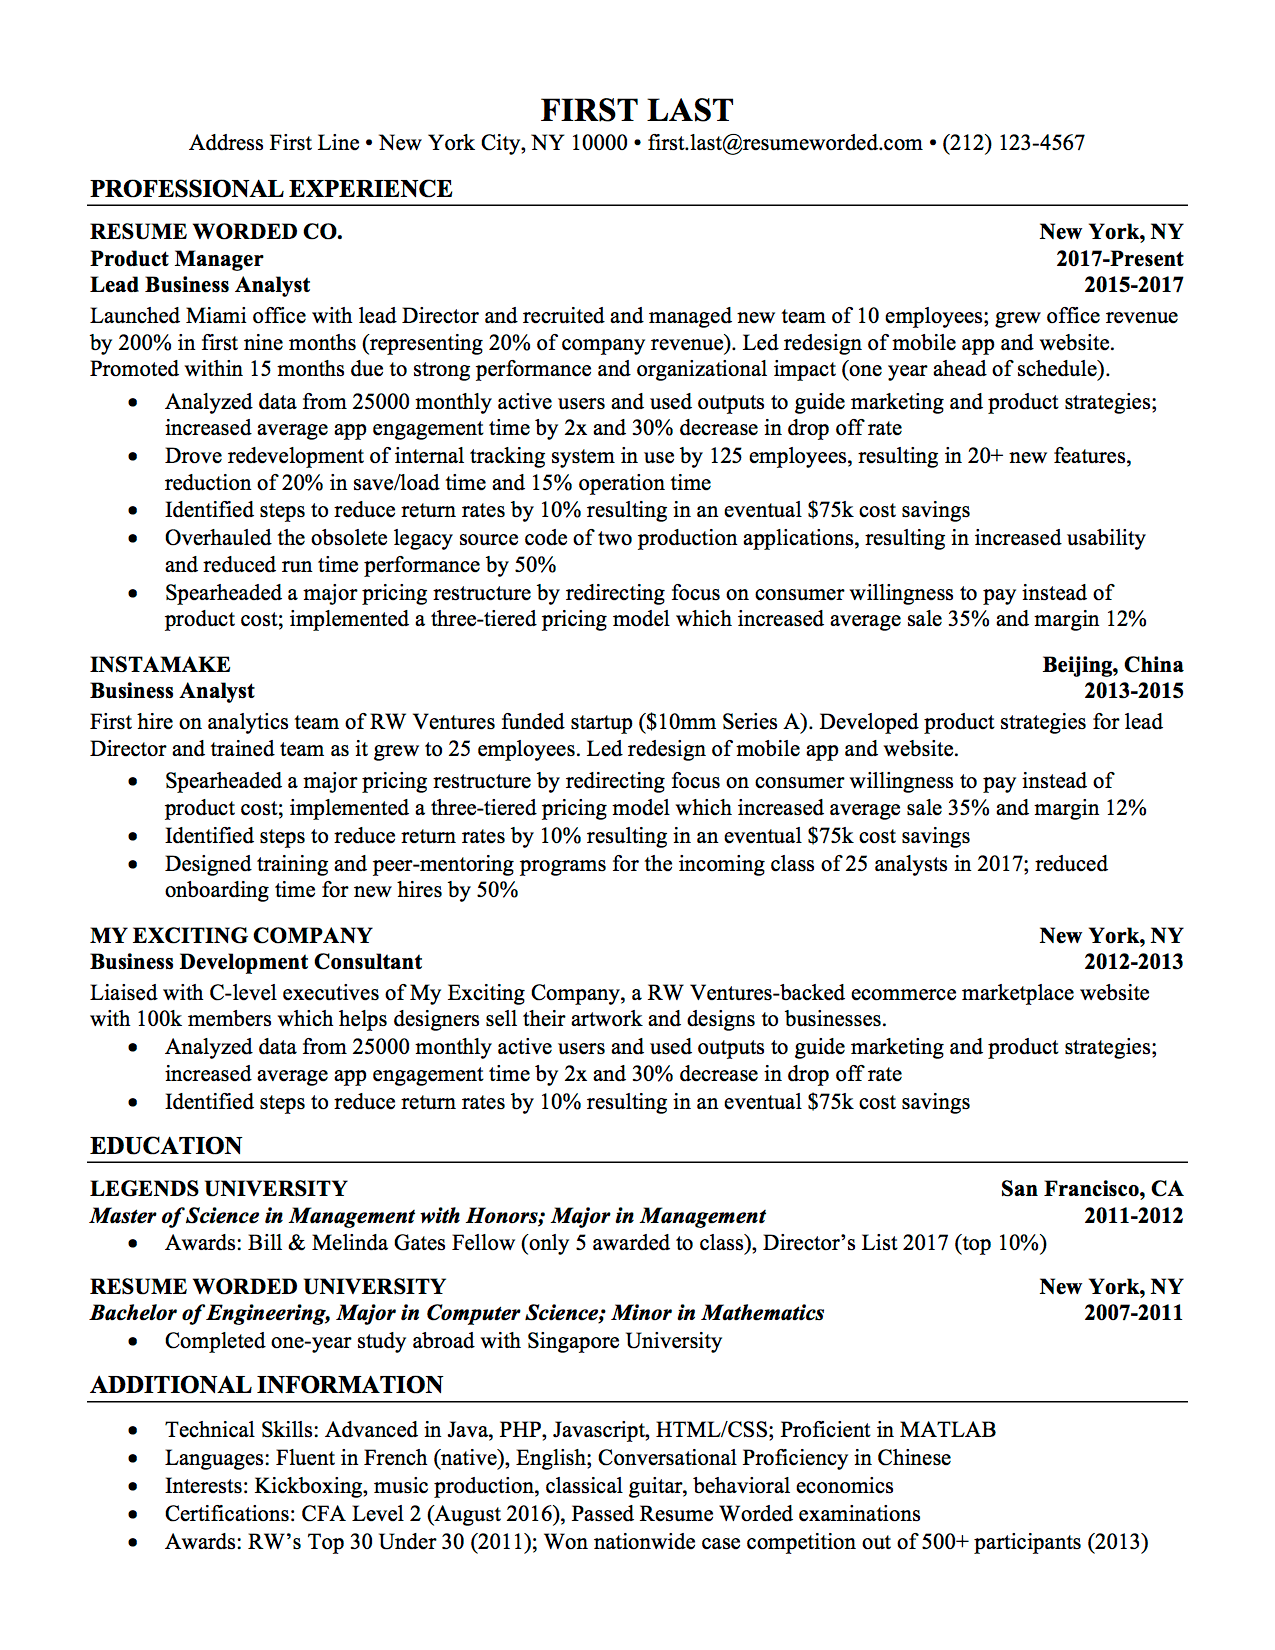 resume template google docs free  Professional ATS Resume Templates for Experienced Hires ..